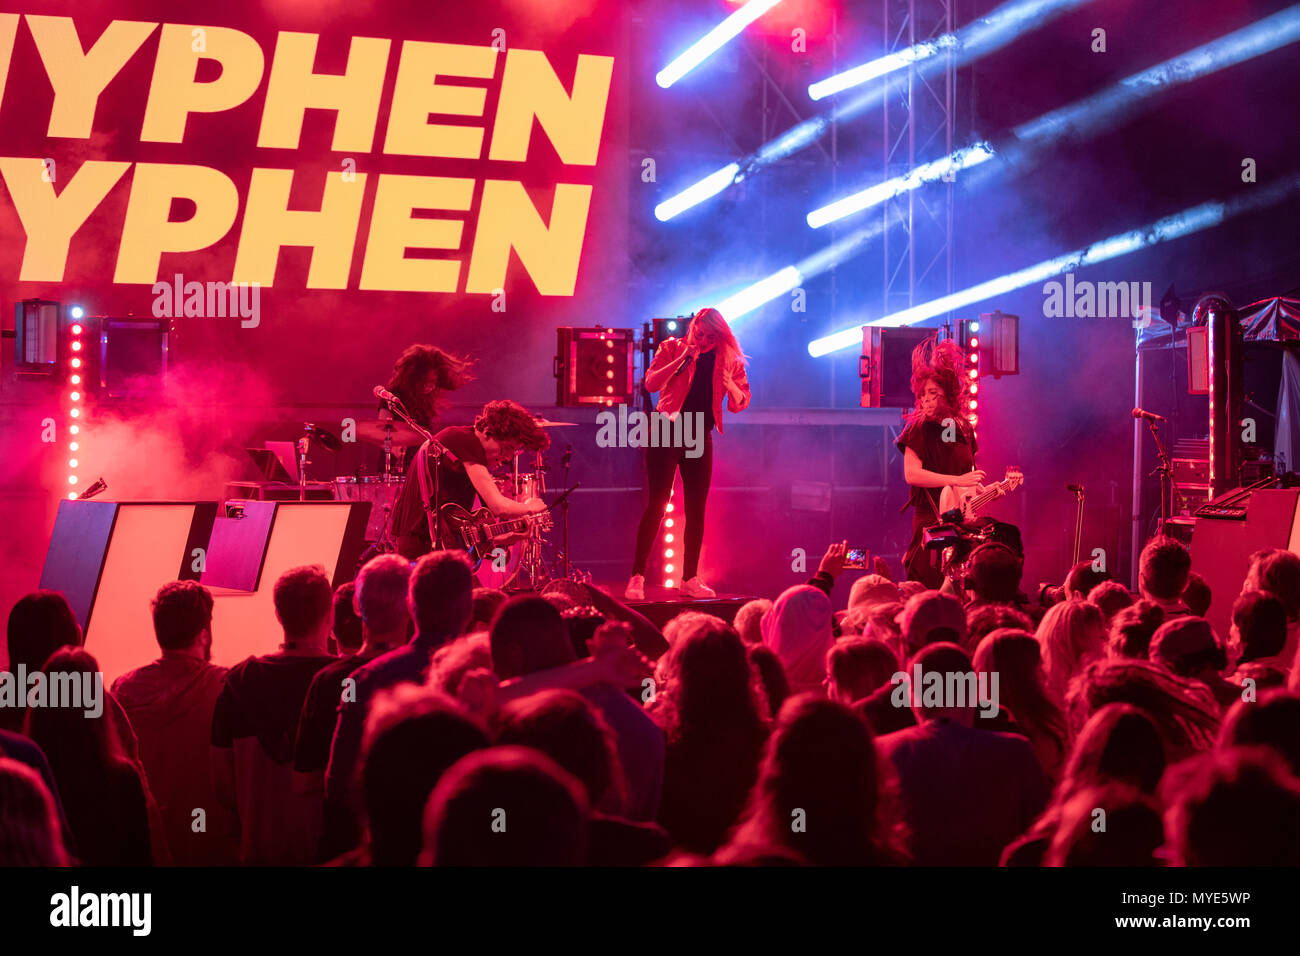 Cannes, France, 6 June 2018, Hyphen Hyphen in concert at Midem 2018, Midem Beach, Cannes © ifnm / Alamy Live News - Stock Image